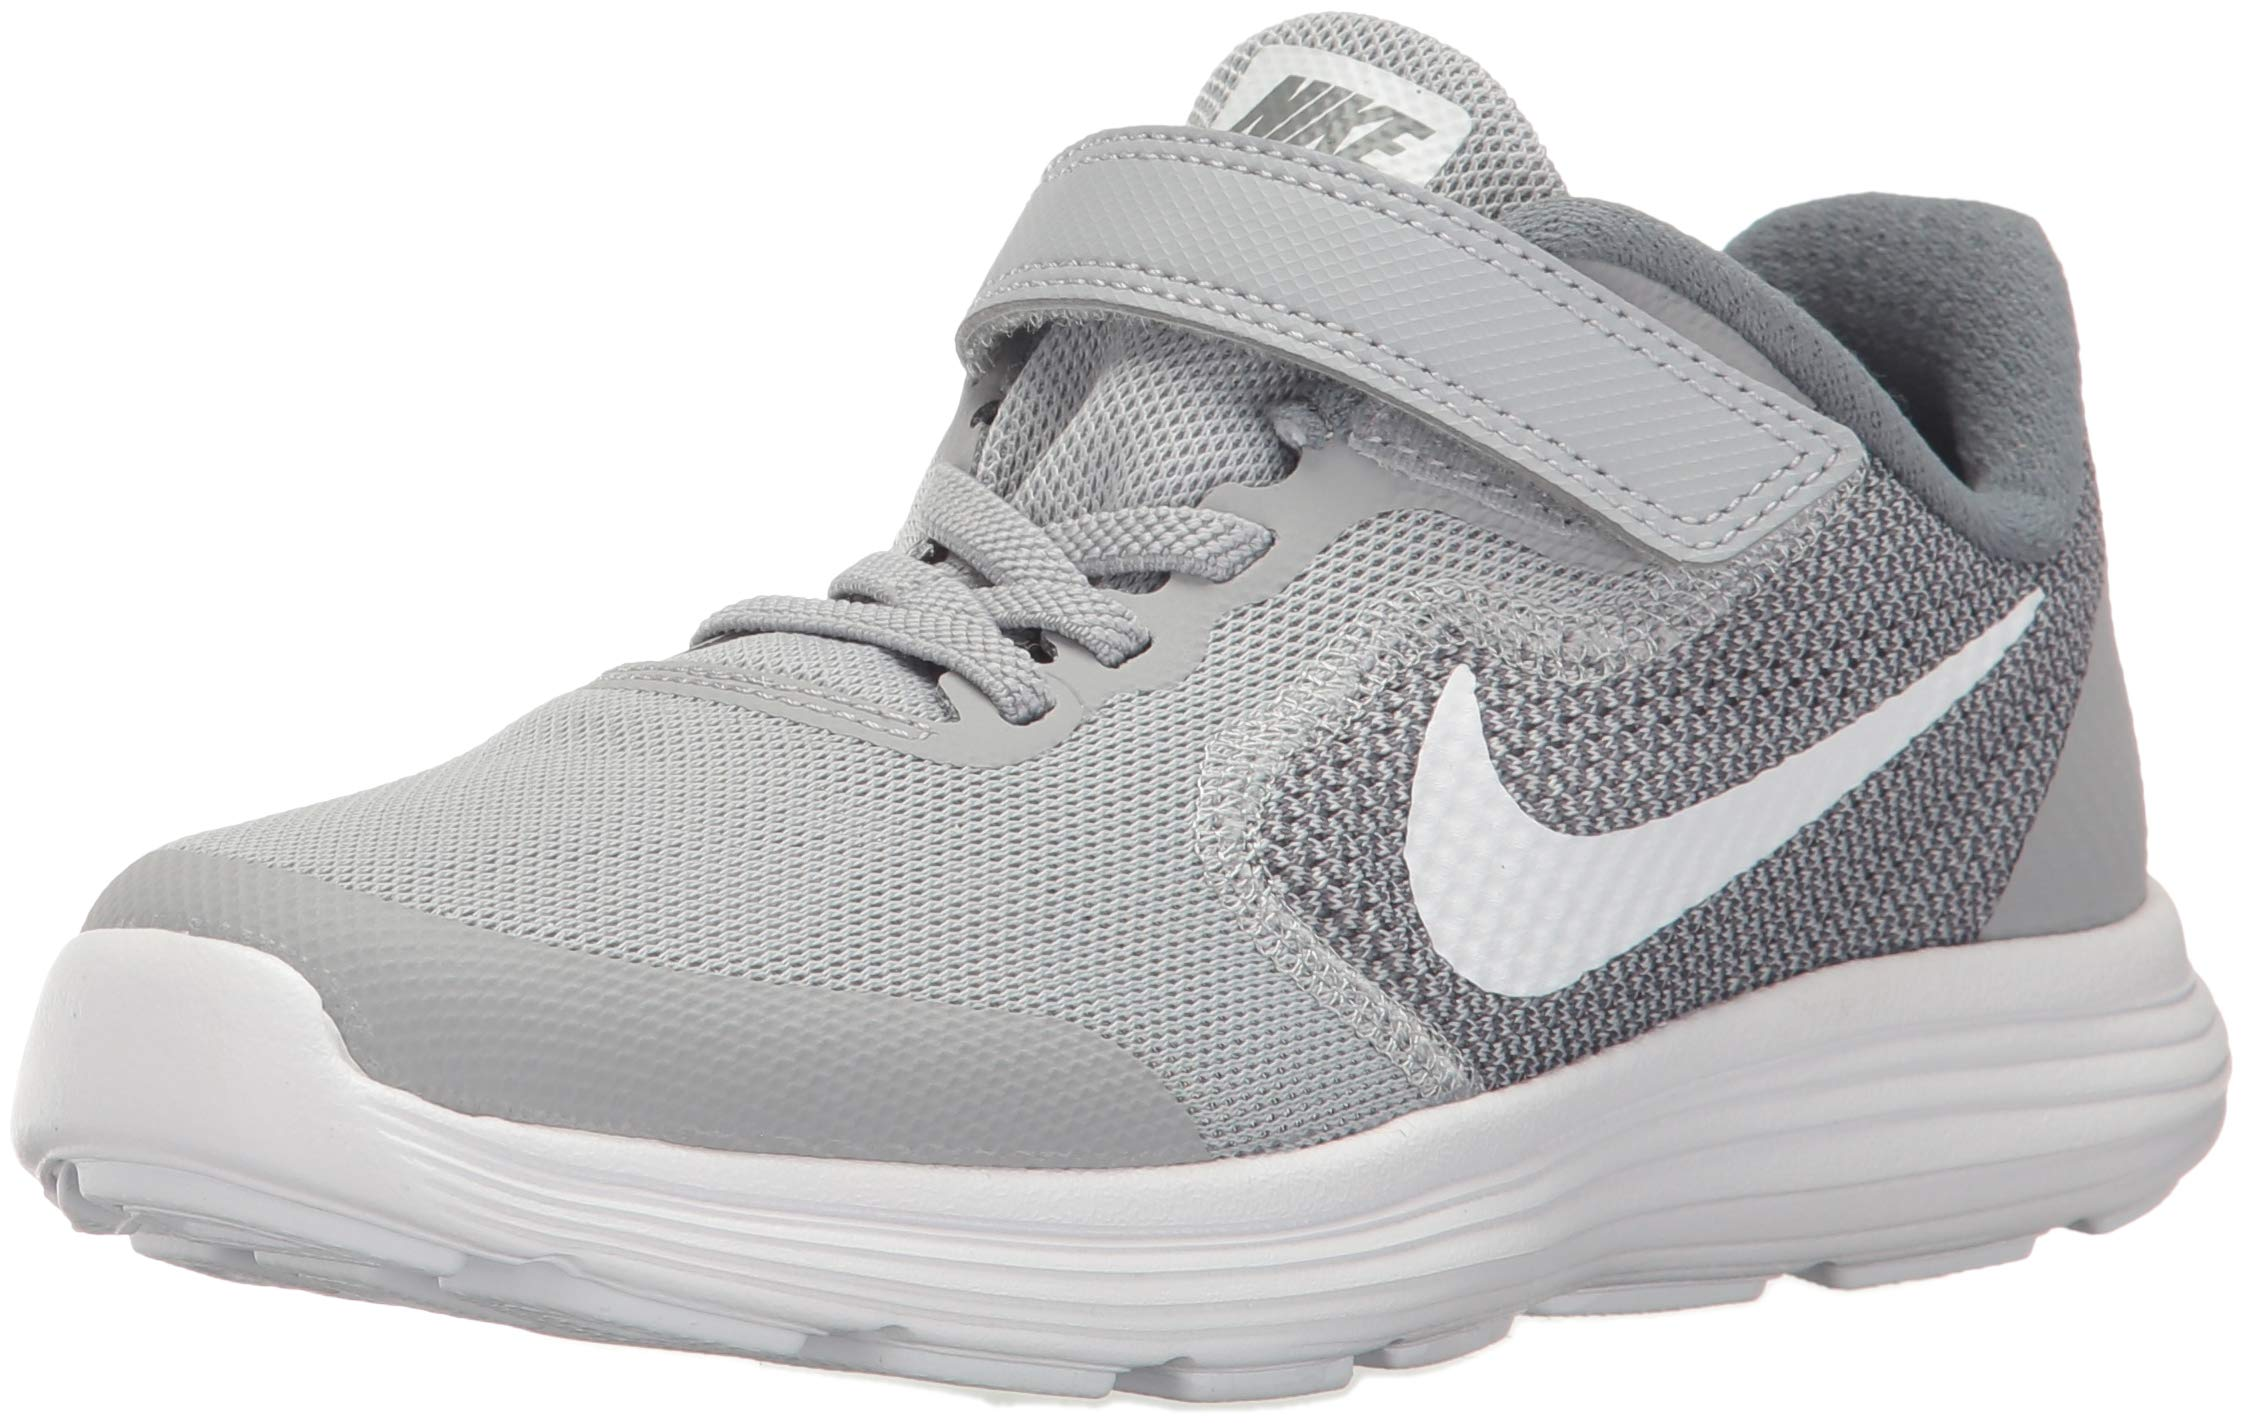 NIKE Kids' Revolution 3 (Psv) Running-Shoes, Wolf Grey/White/Cool Grey, 1 M US Little Kid